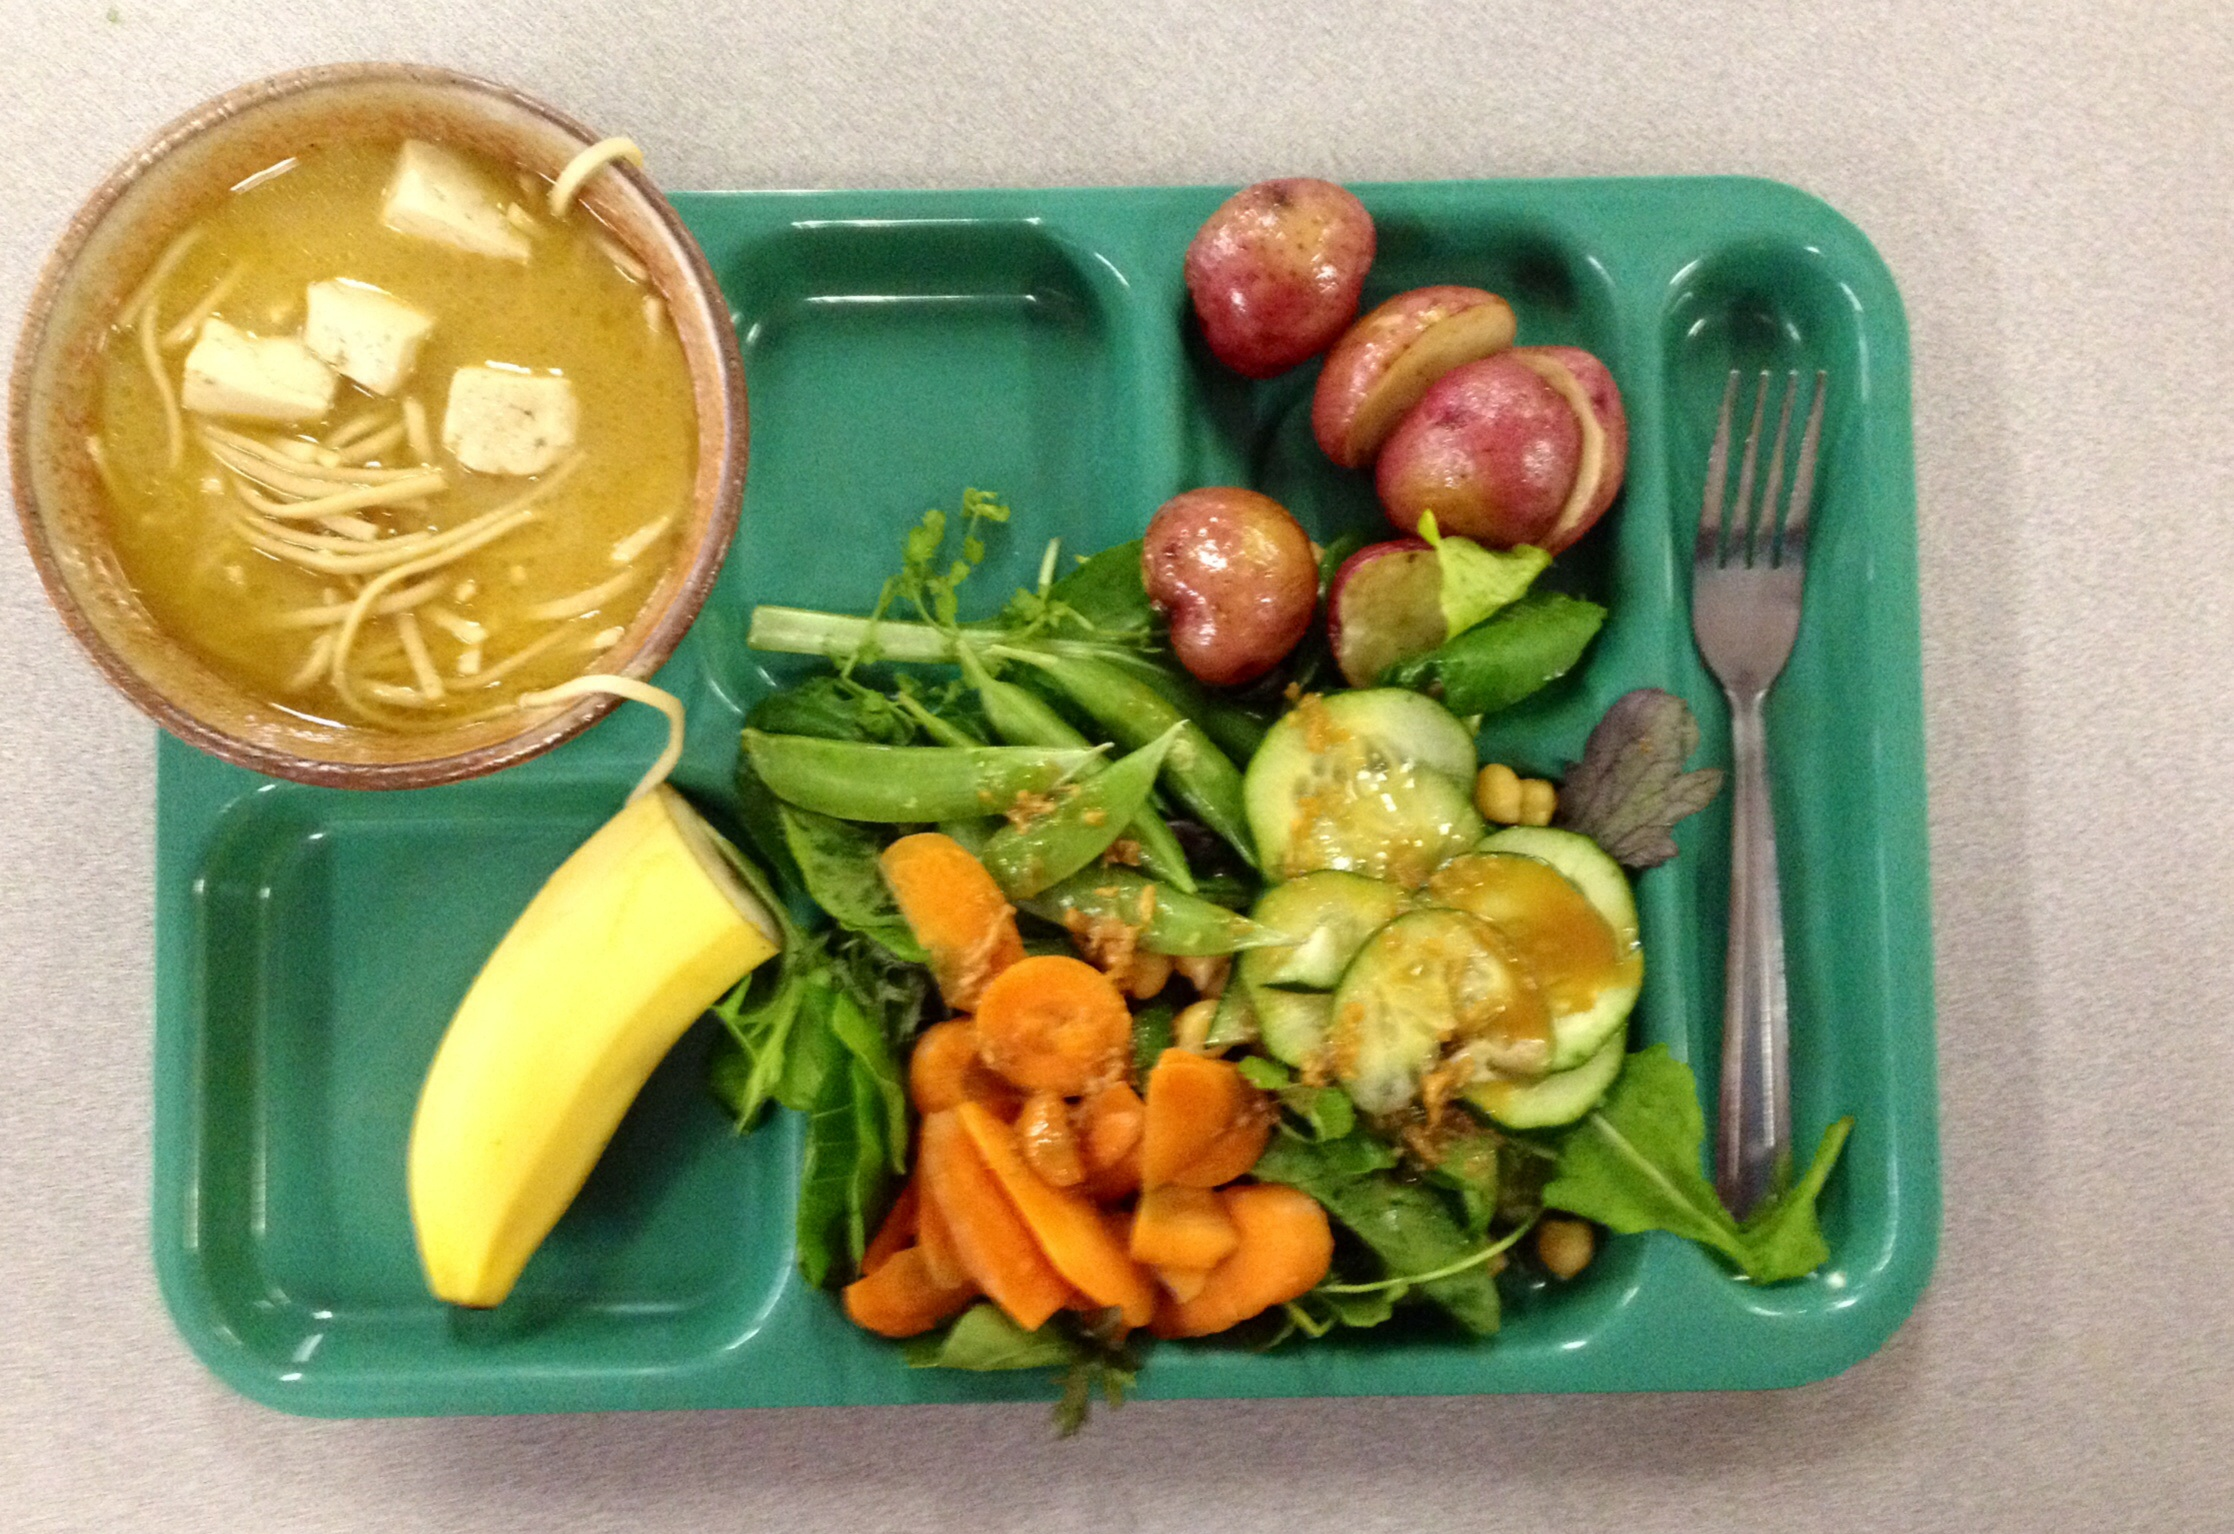 Education: Public Charter School Serves Vegan Lunch